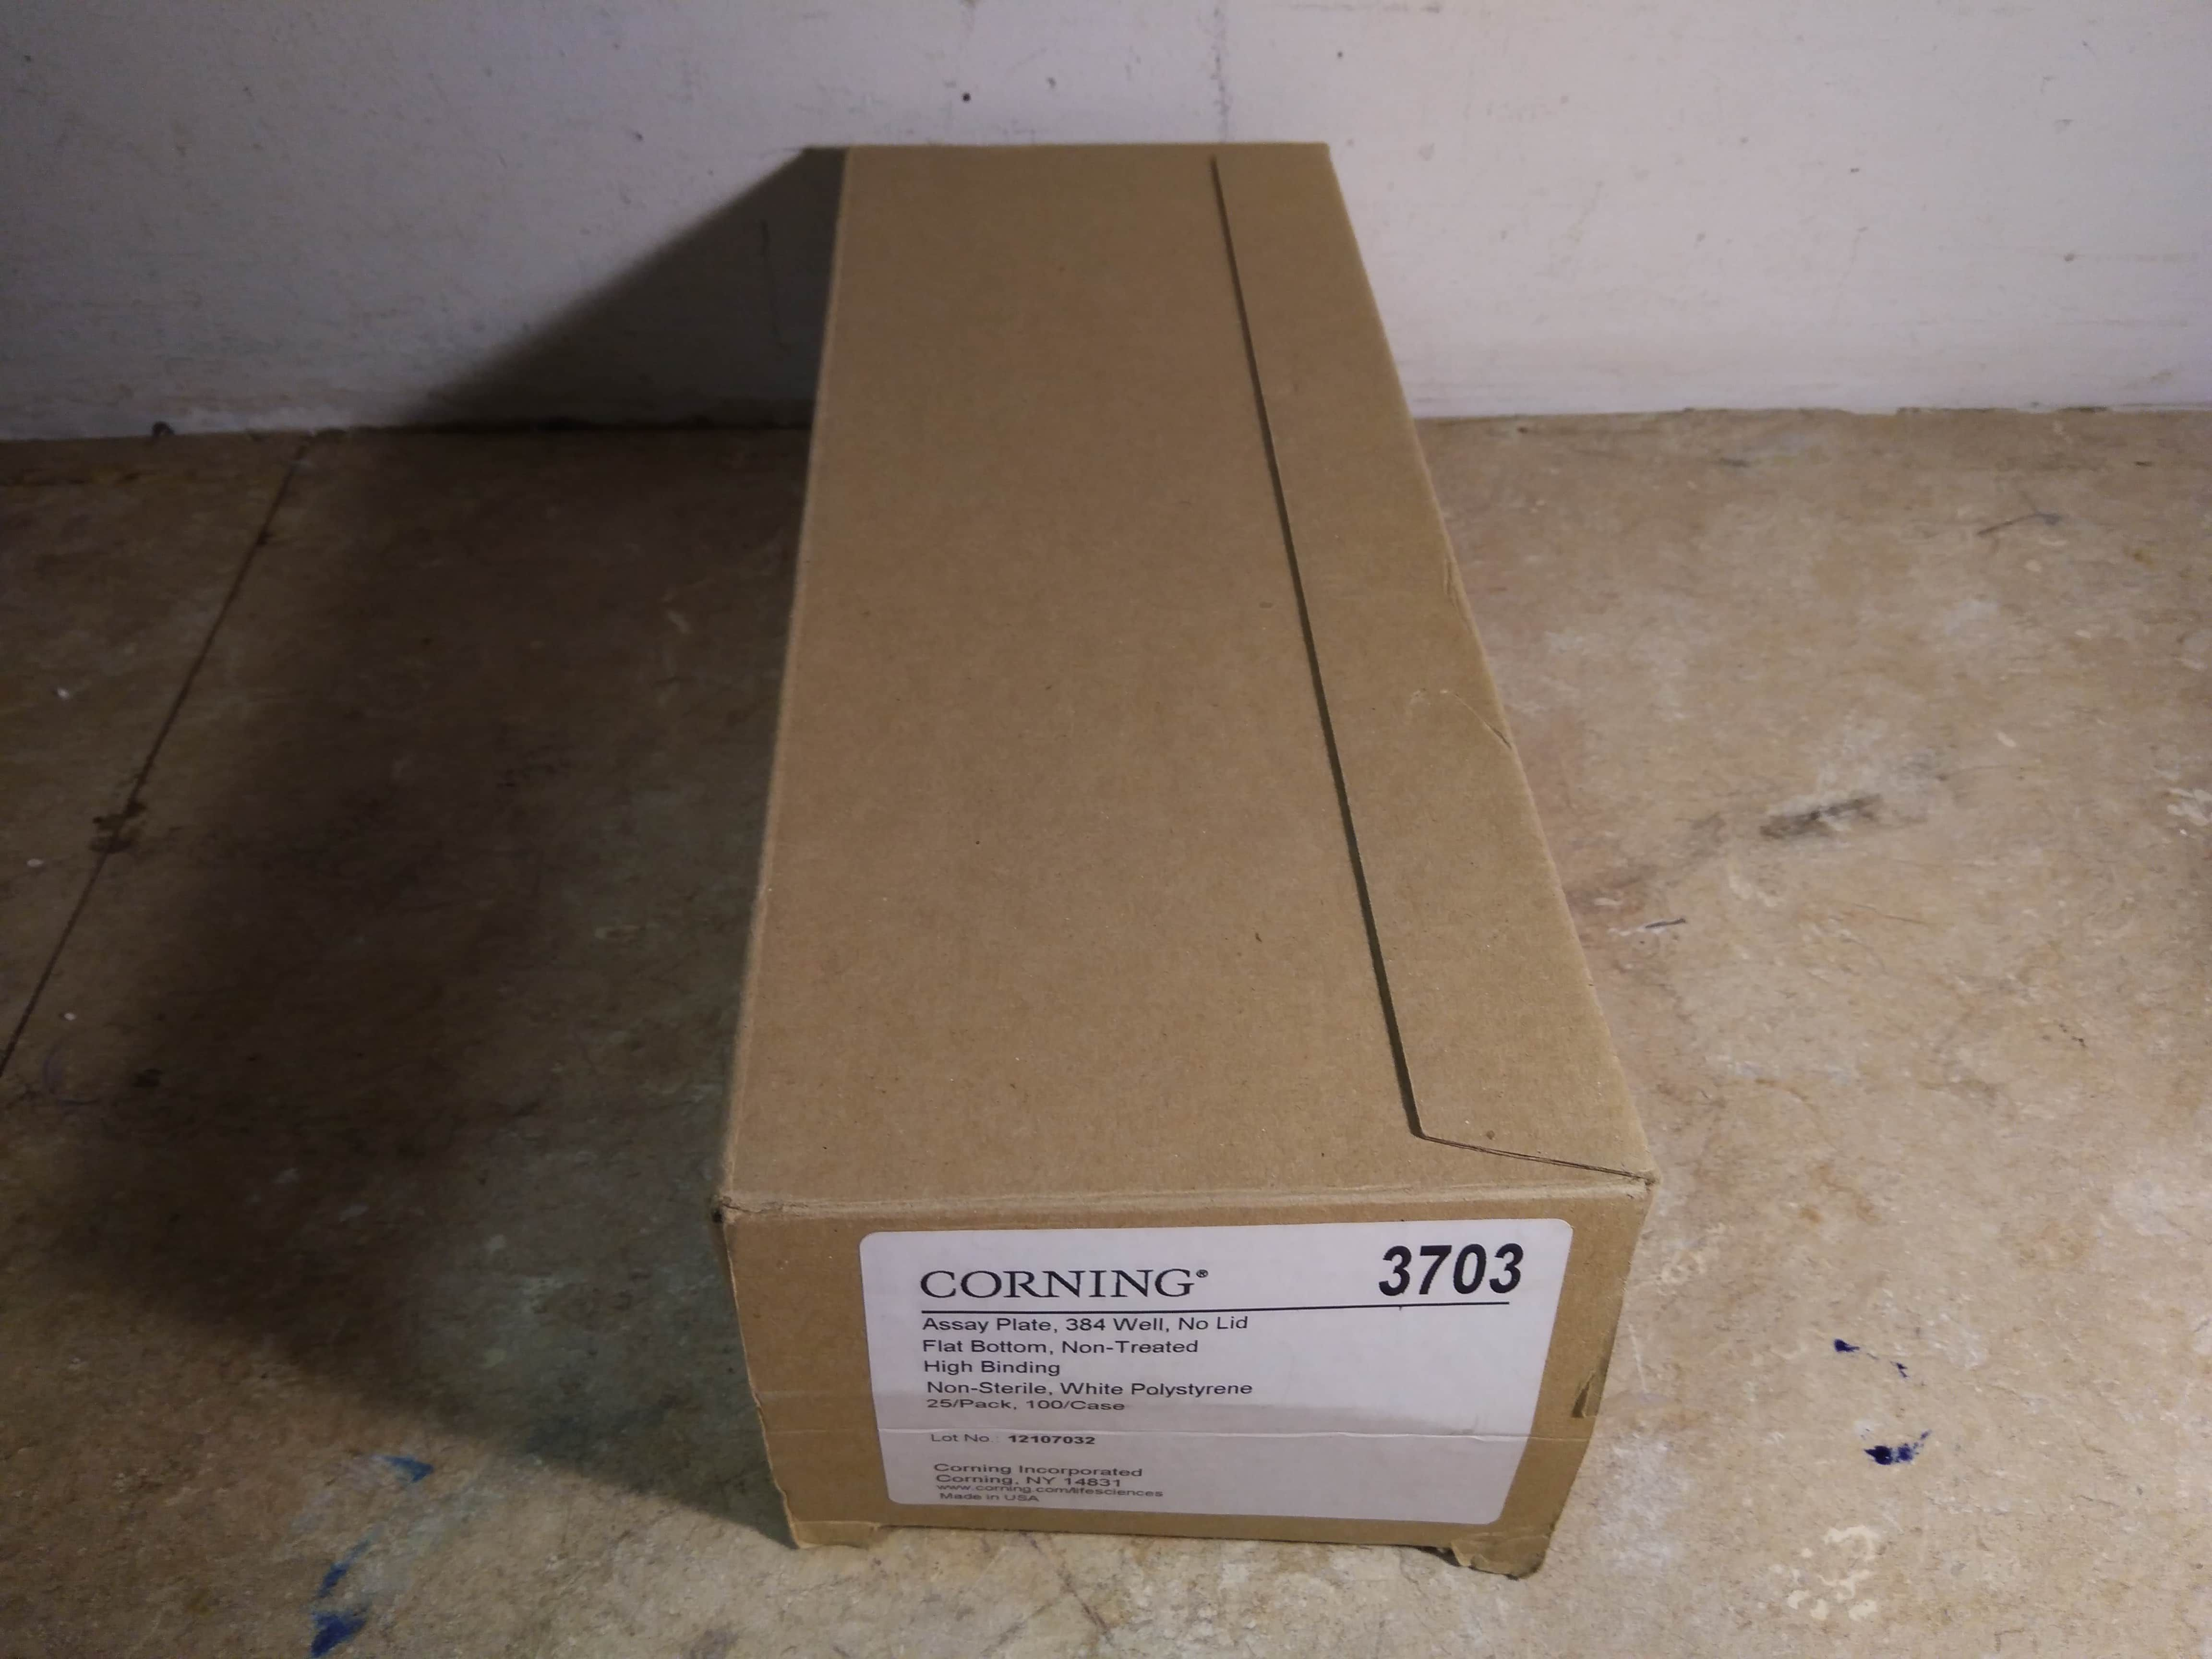 Corning 3703 Assay Plate Microplate 384 Well